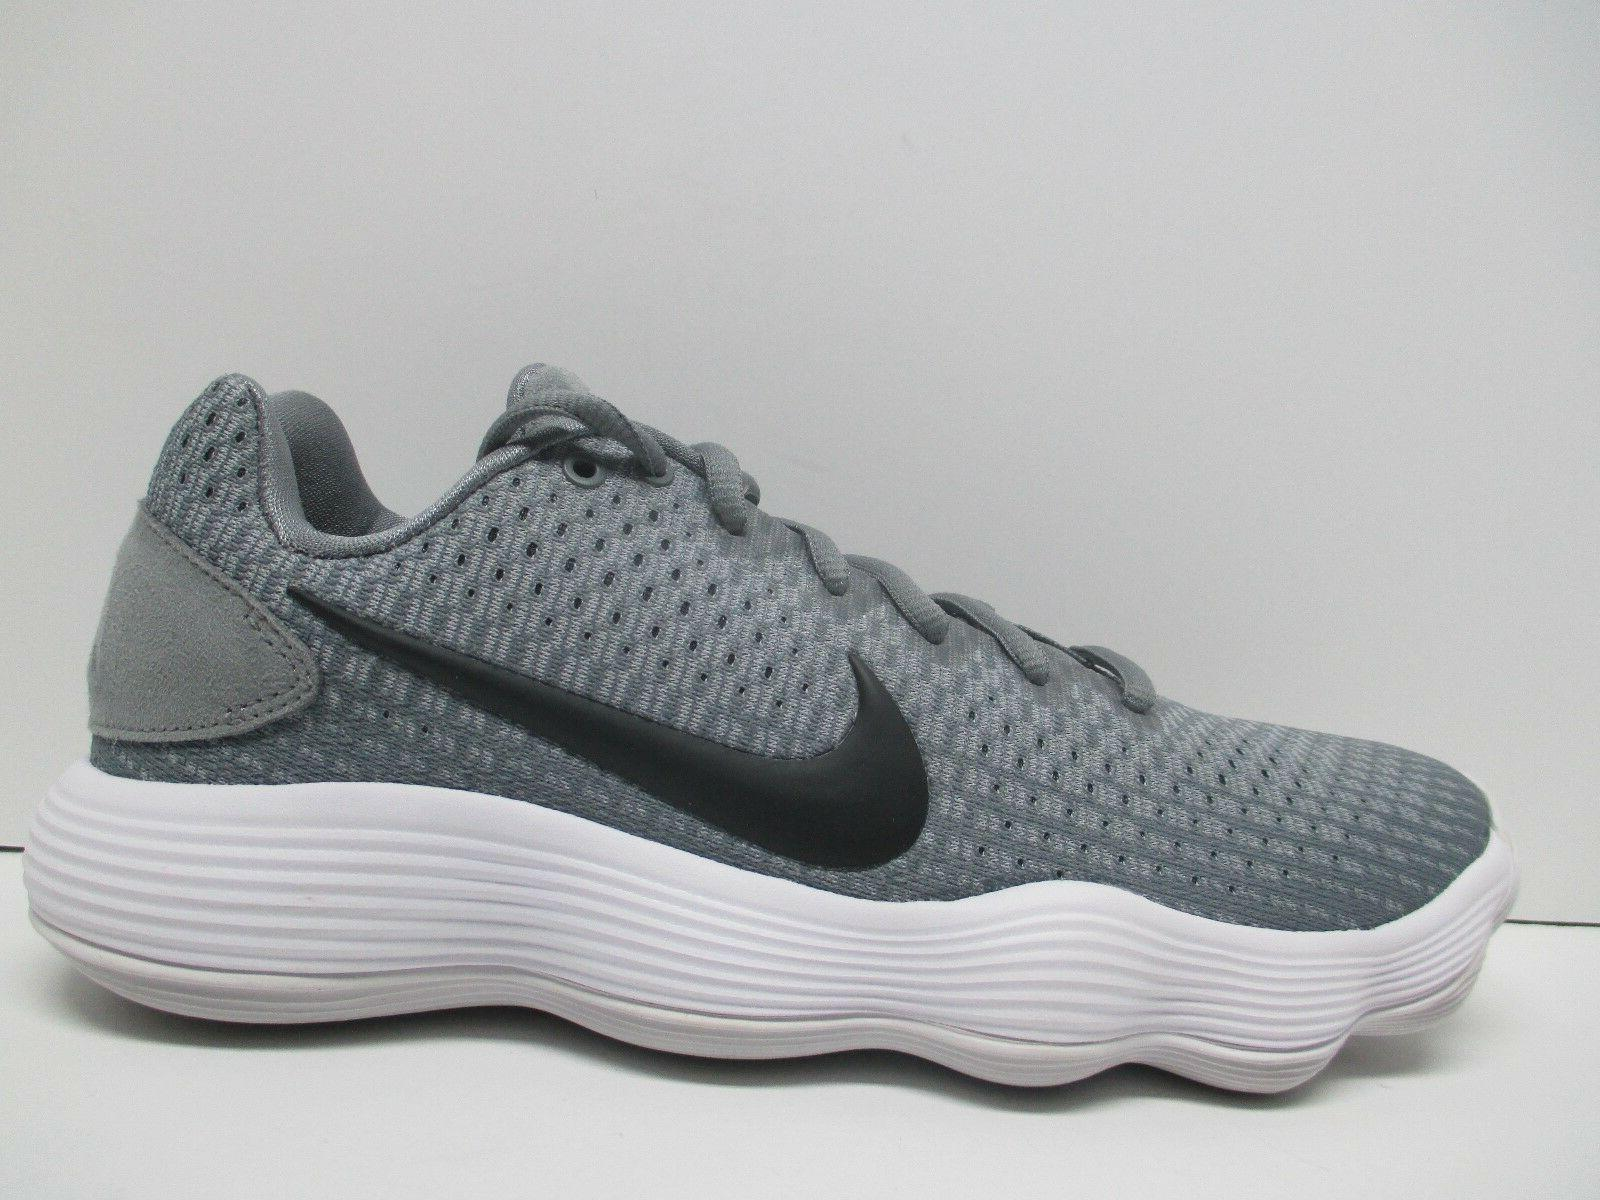 new hyperdunk 2017 low basketball shoes grey